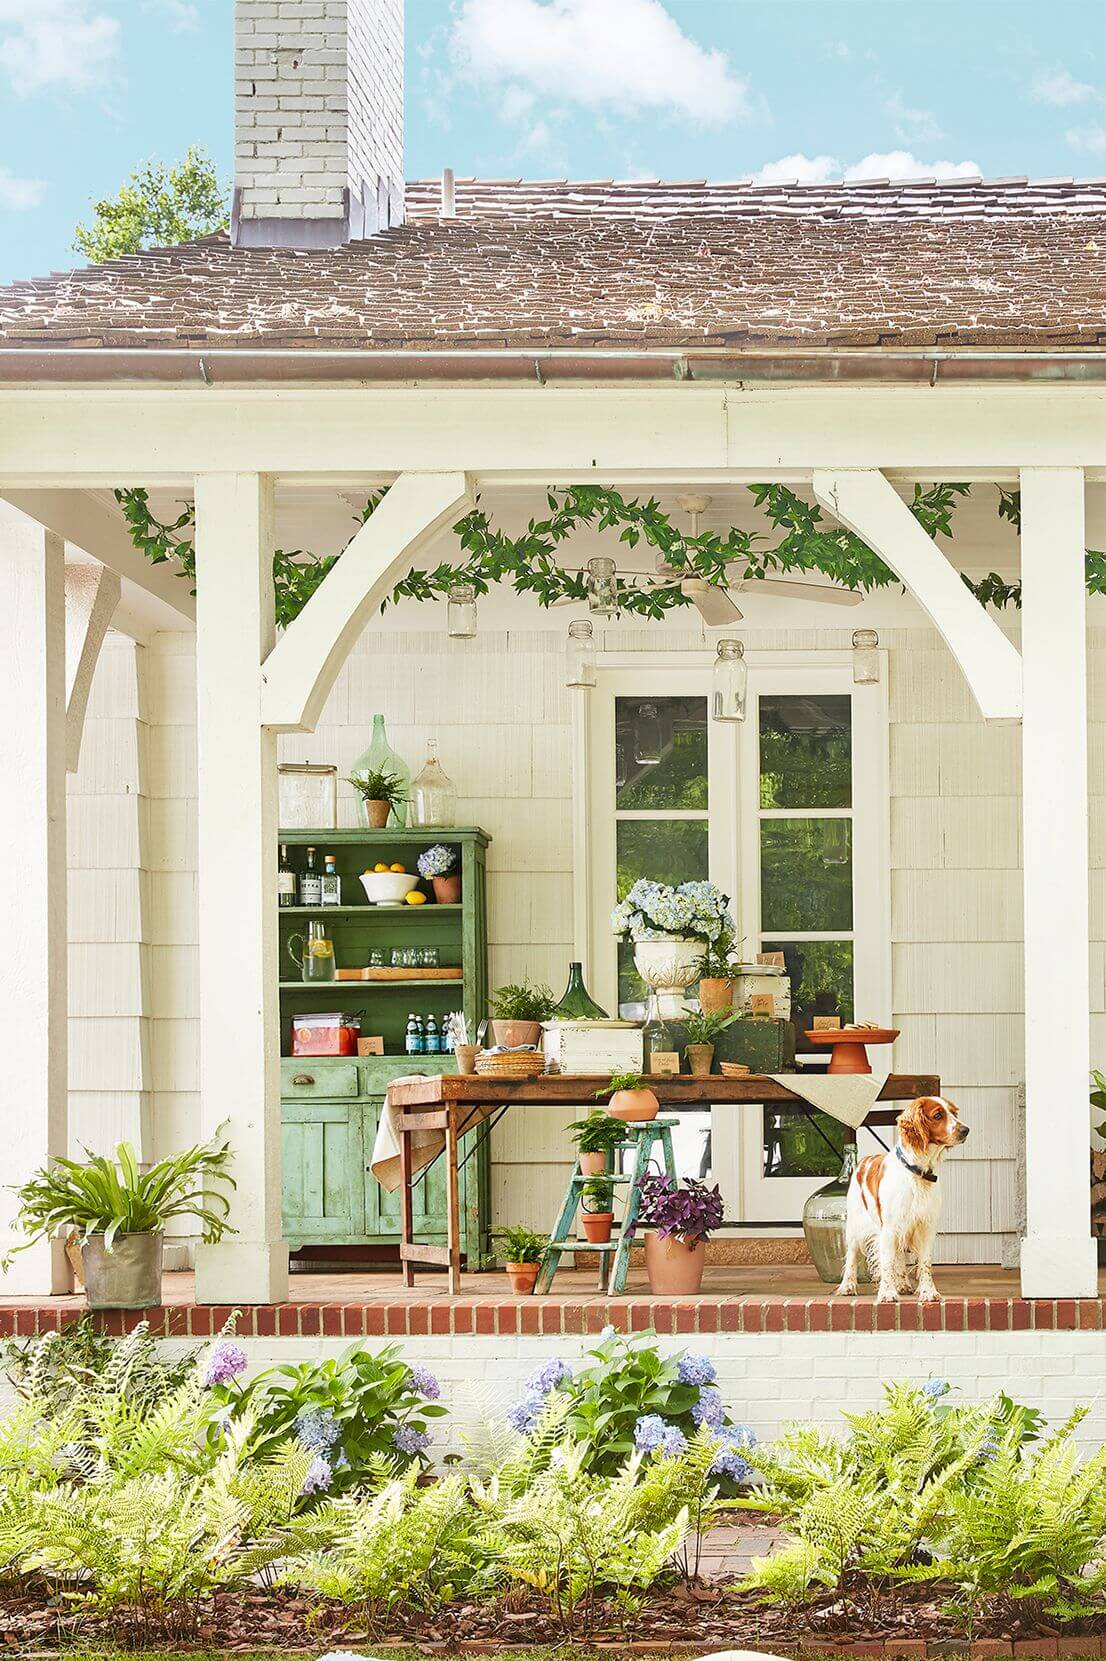 VINTAGE FRONT PORCH SEATING DESIGN IDEAS